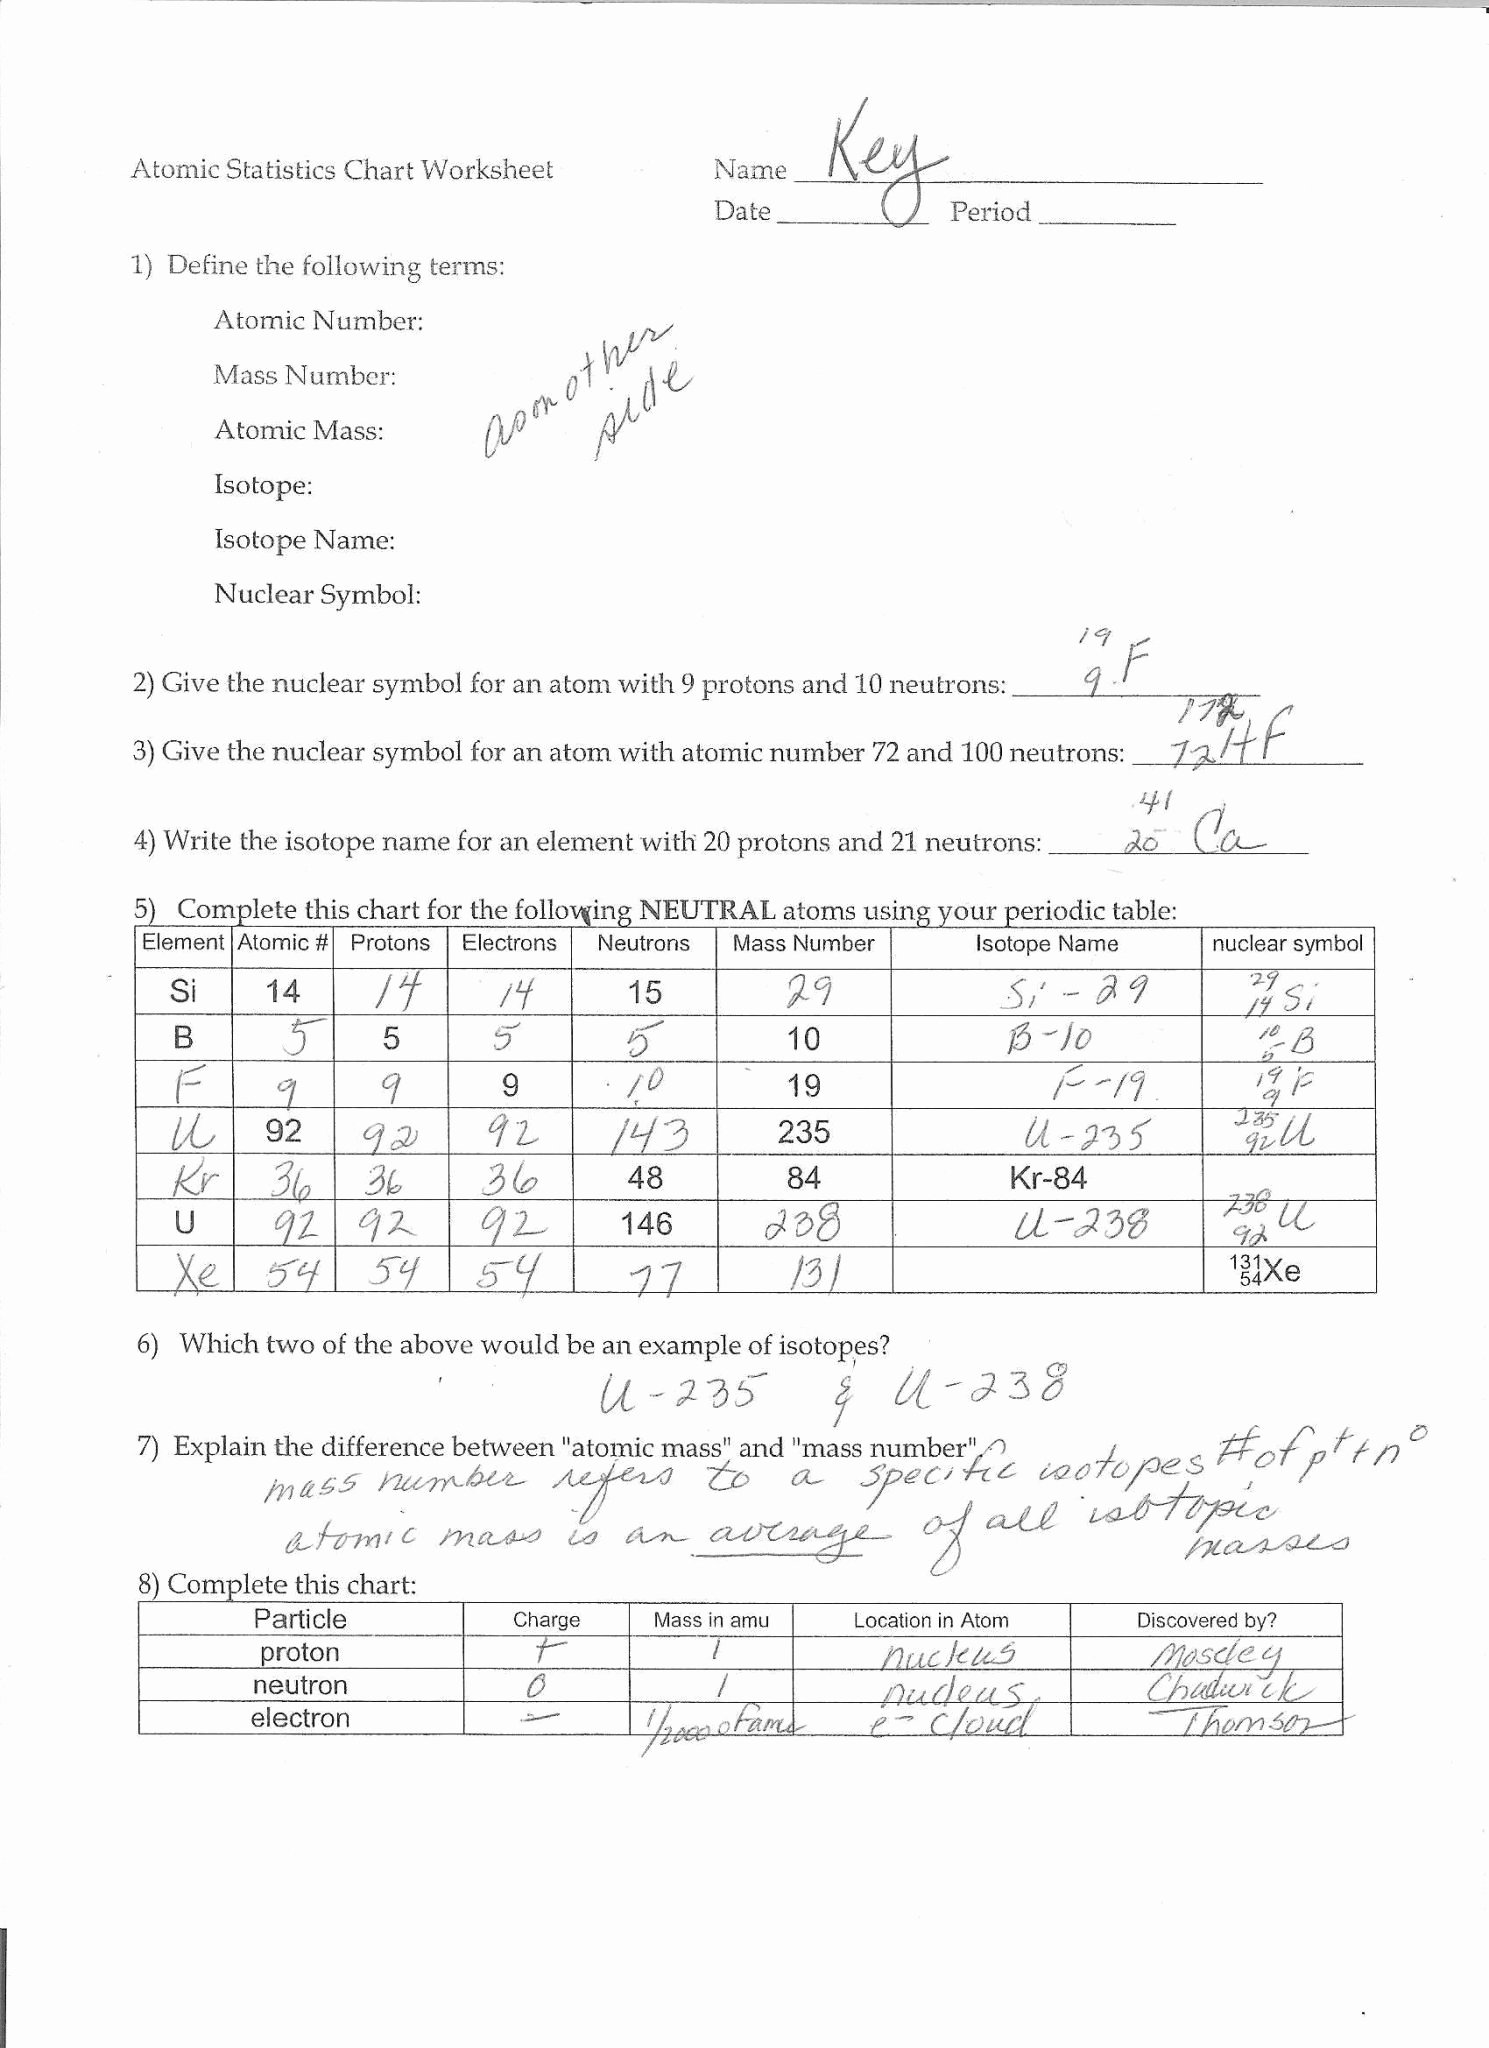 Isotopes Ions and atoms Worksheet New isotopes and atomic Mass Worksheet Answers